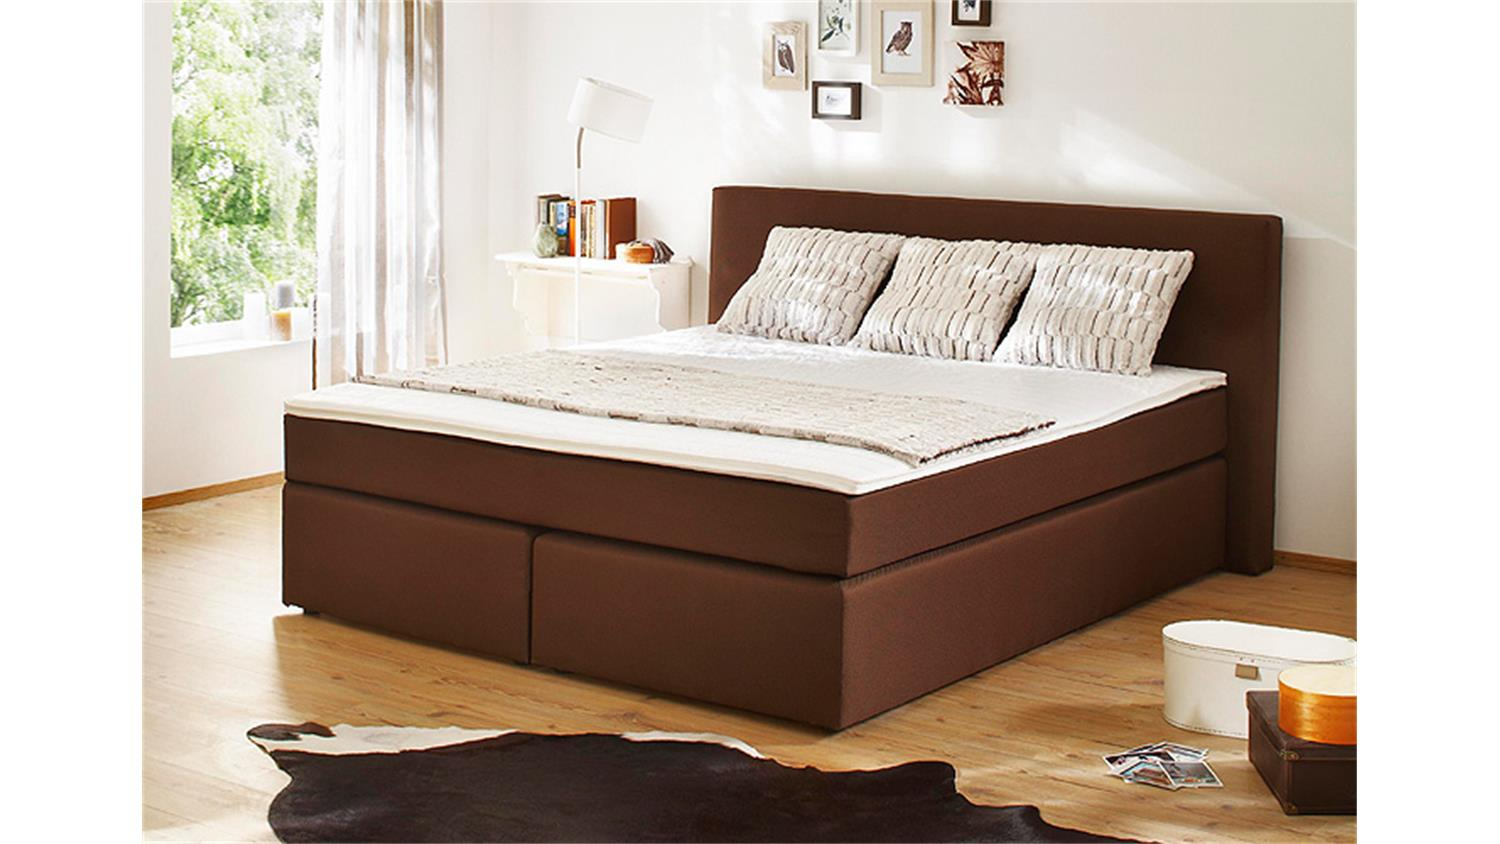 boxspringbett bx420 bett schlafzimmerbett in braun 140x200. Black Bedroom Furniture Sets. Home Design Ideas